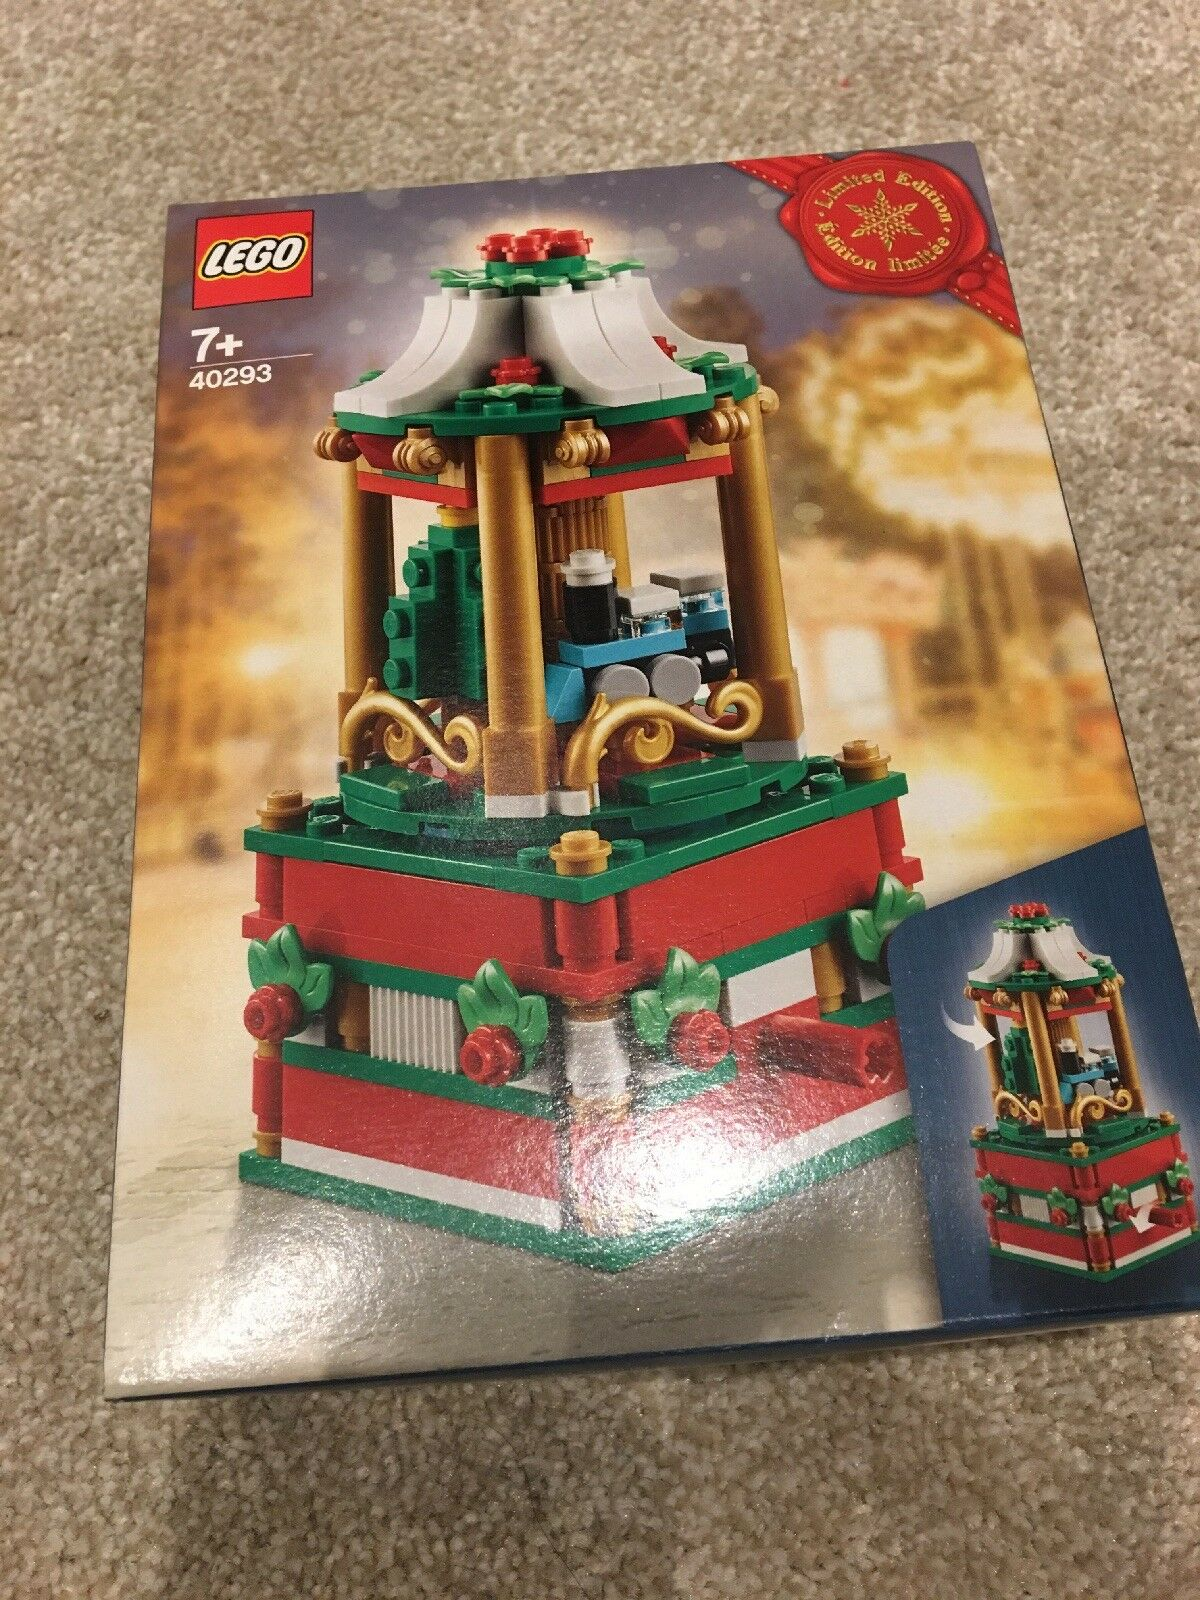 Lego 2018 Limited Edition Christmas Carousel, set 40293, Brand New